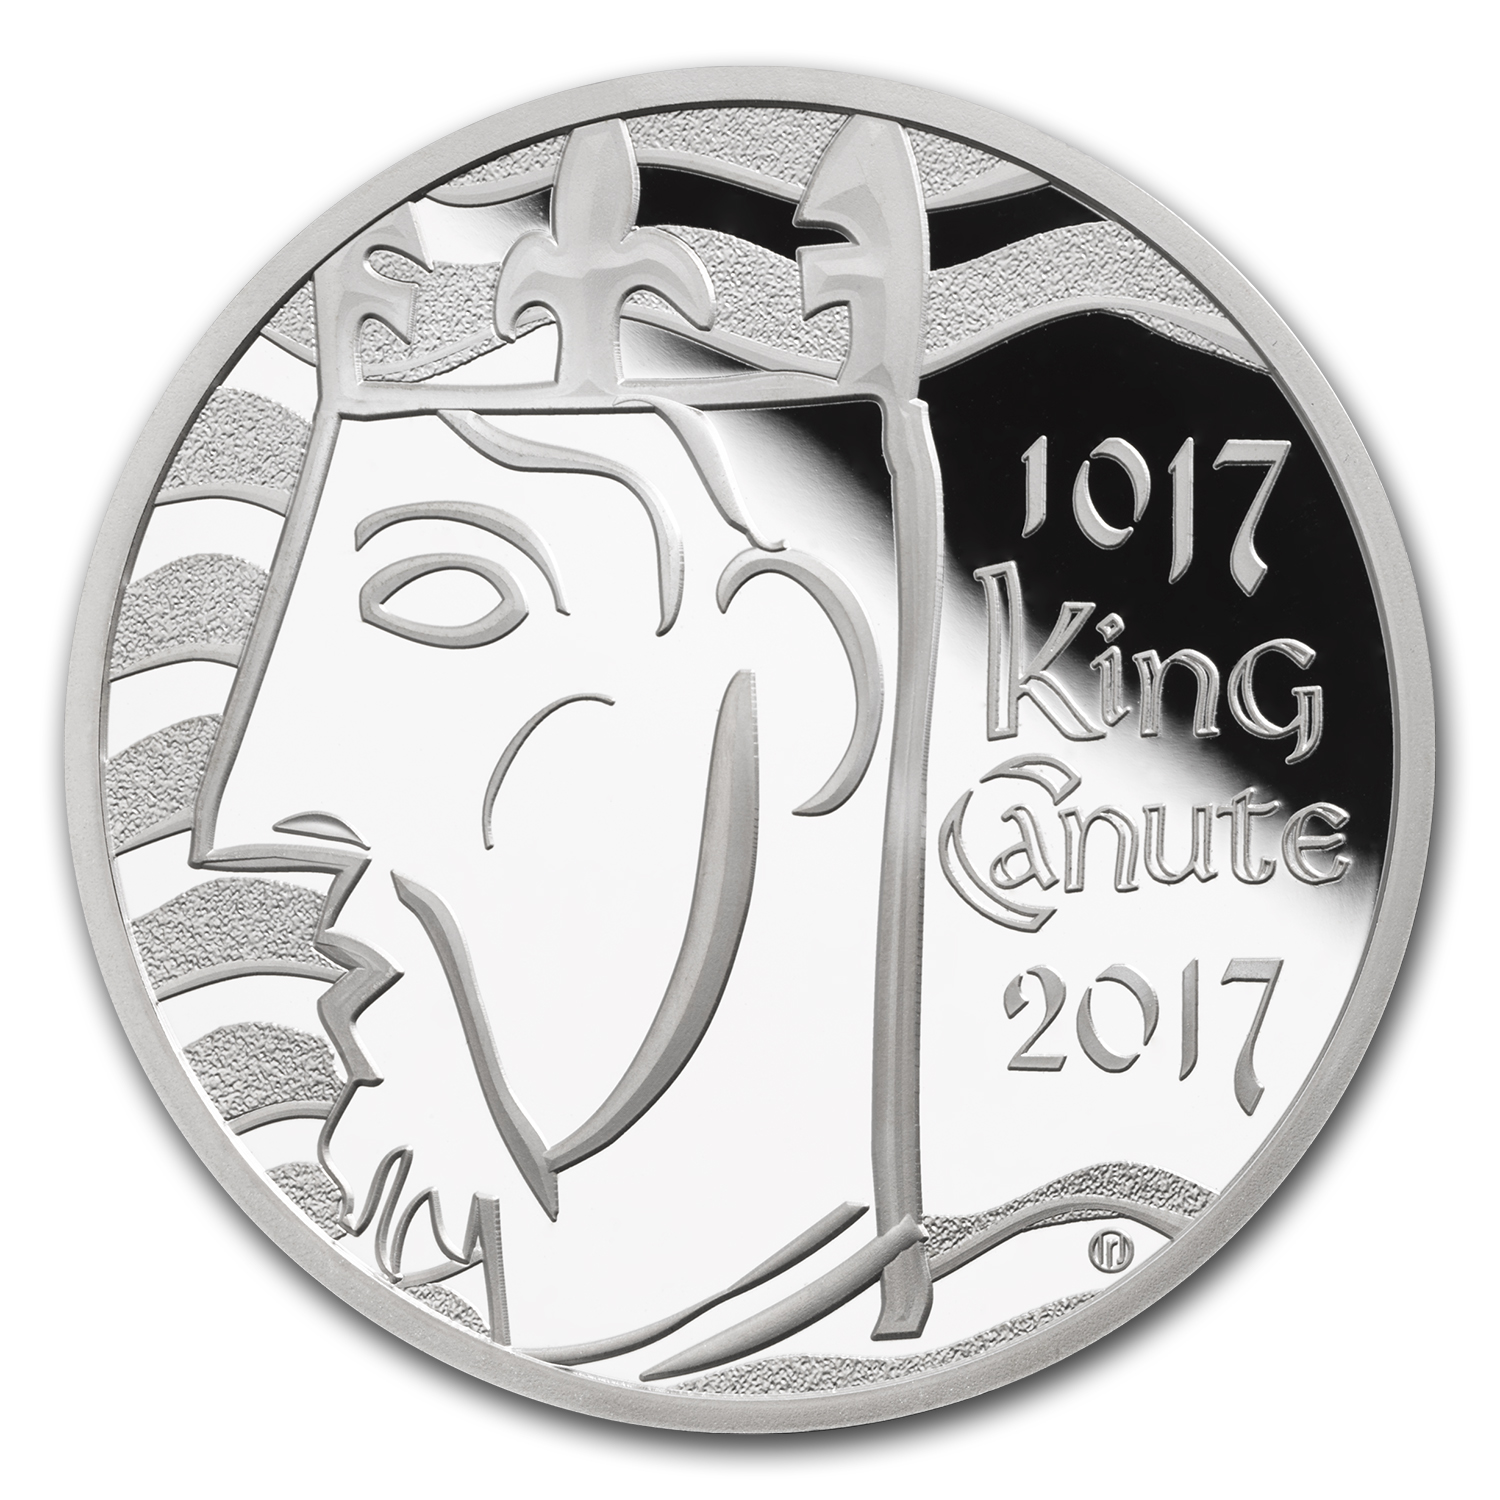 2017 Great Britain £5 Silver Coronation of King Canute Piedfort